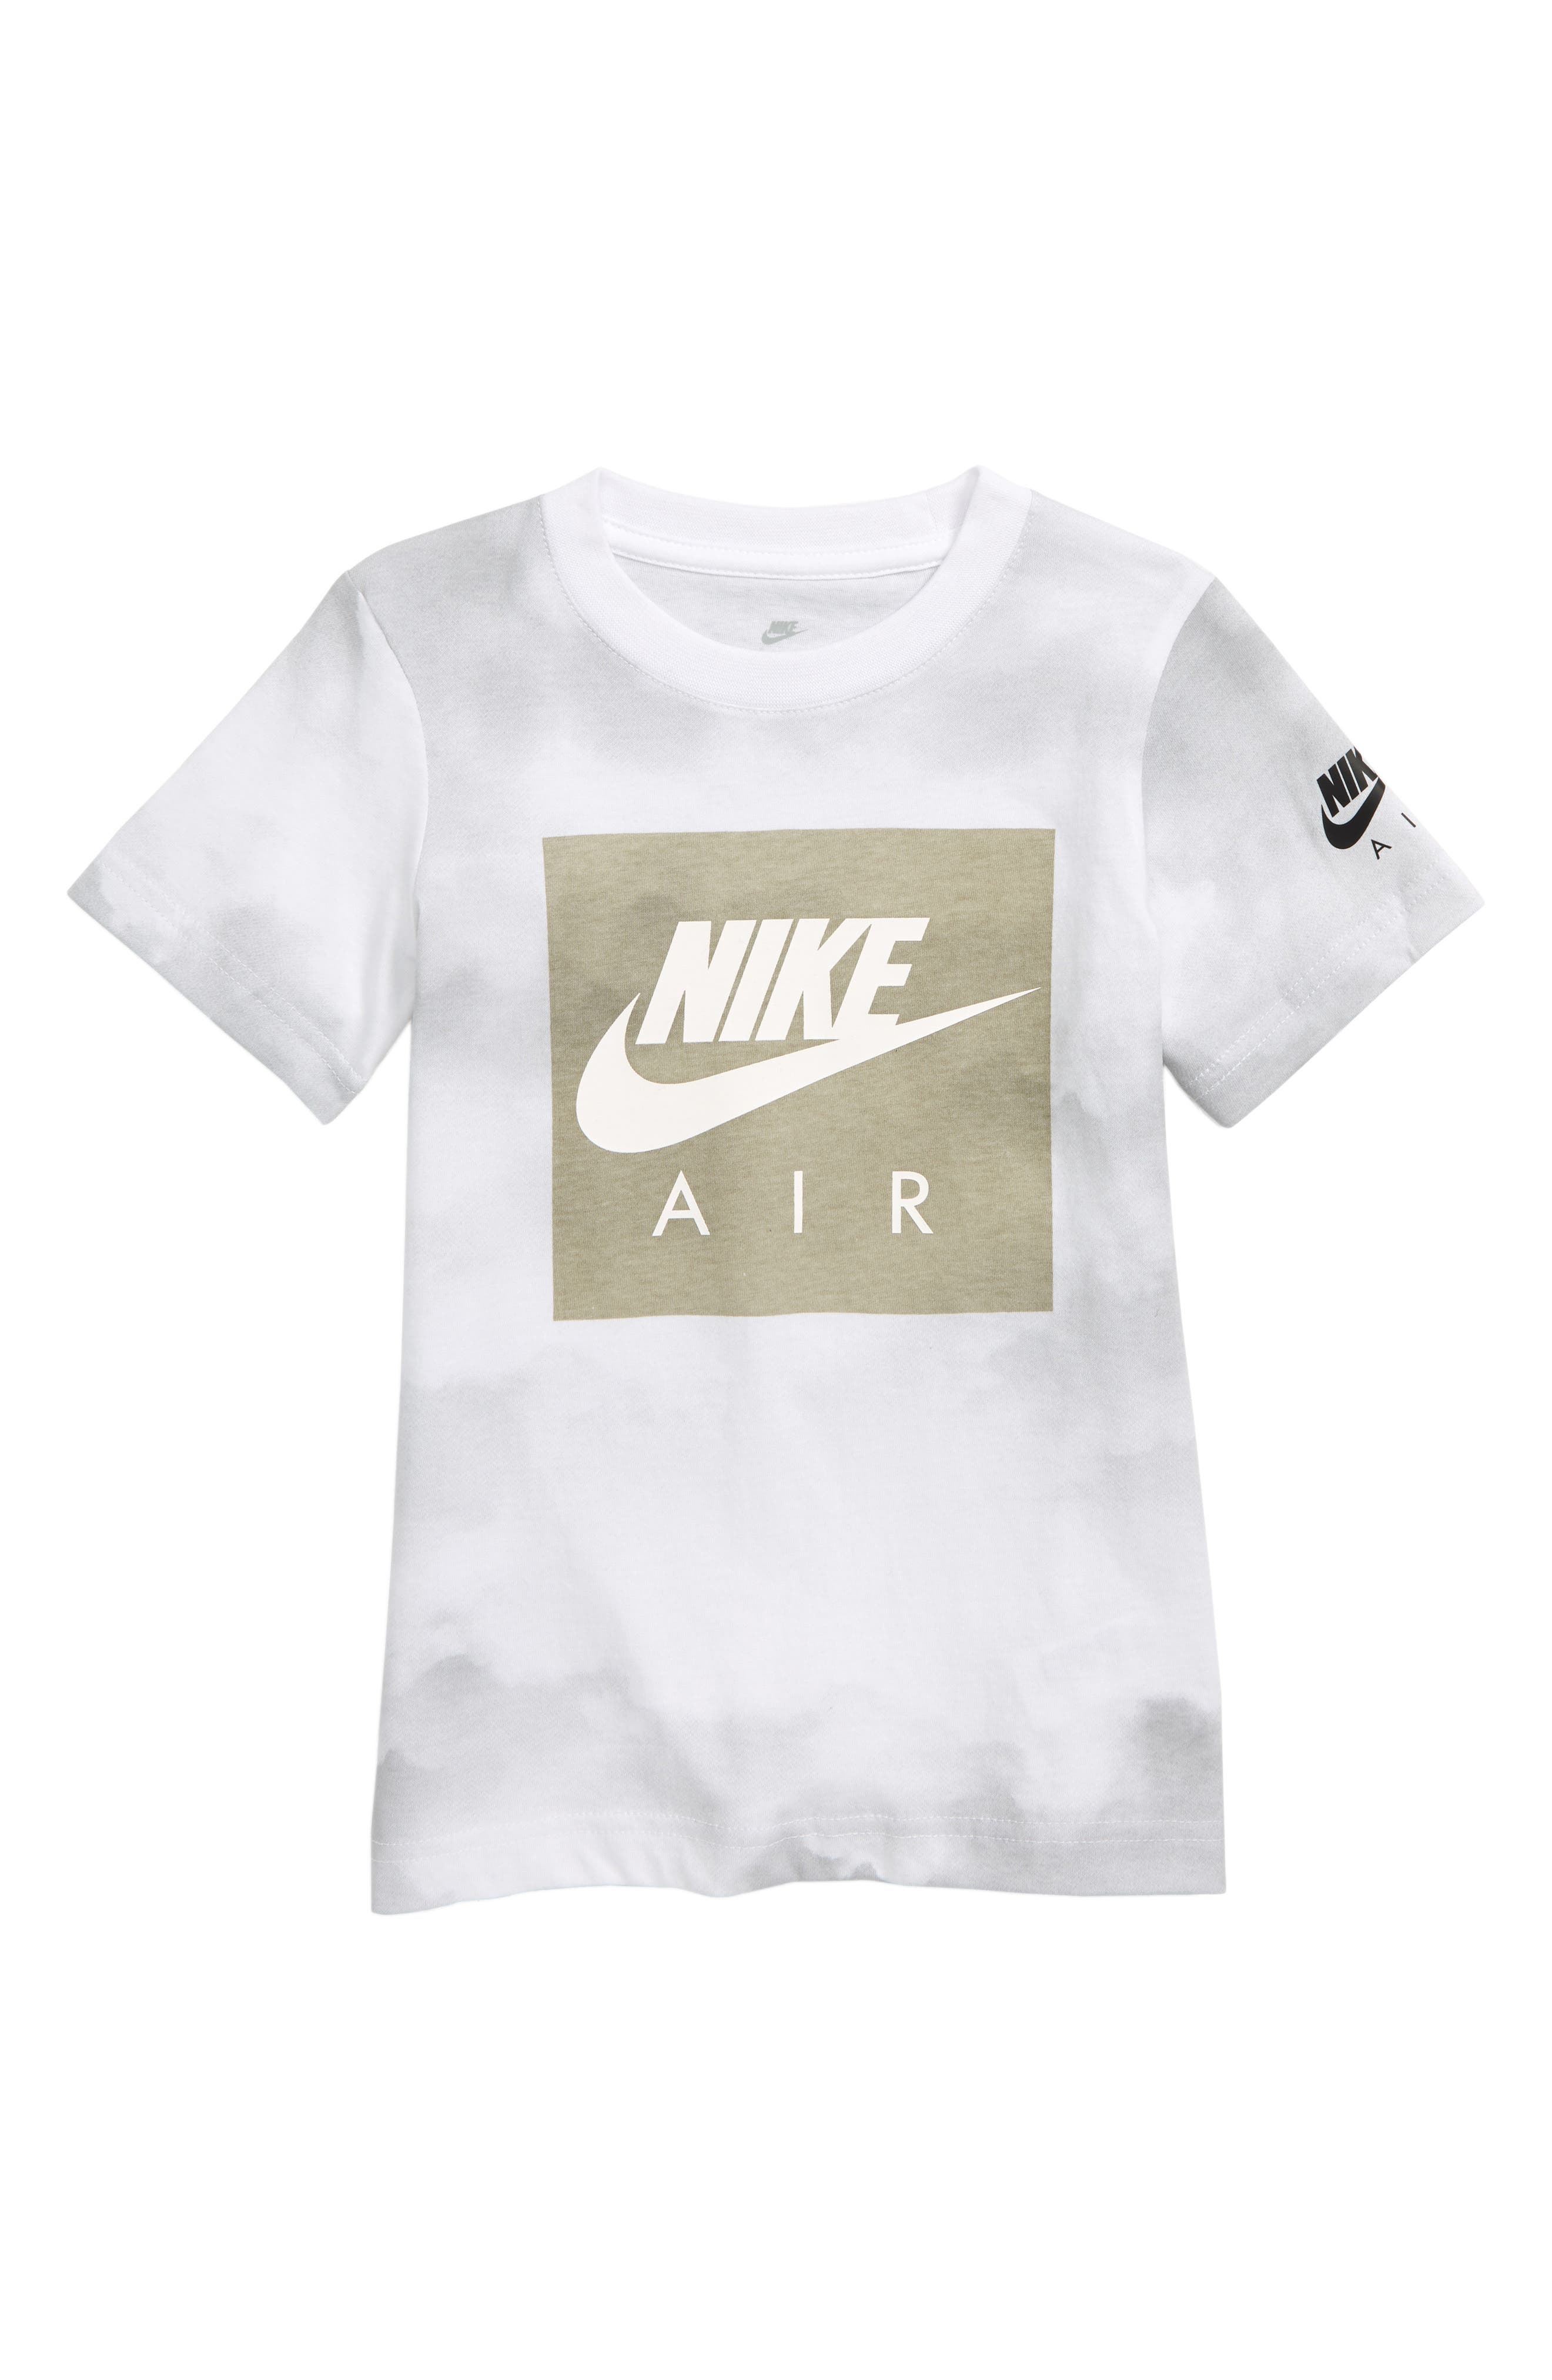 Air Cloud T-Shirt,                             Main thumbnail 1, color,                             WHITE